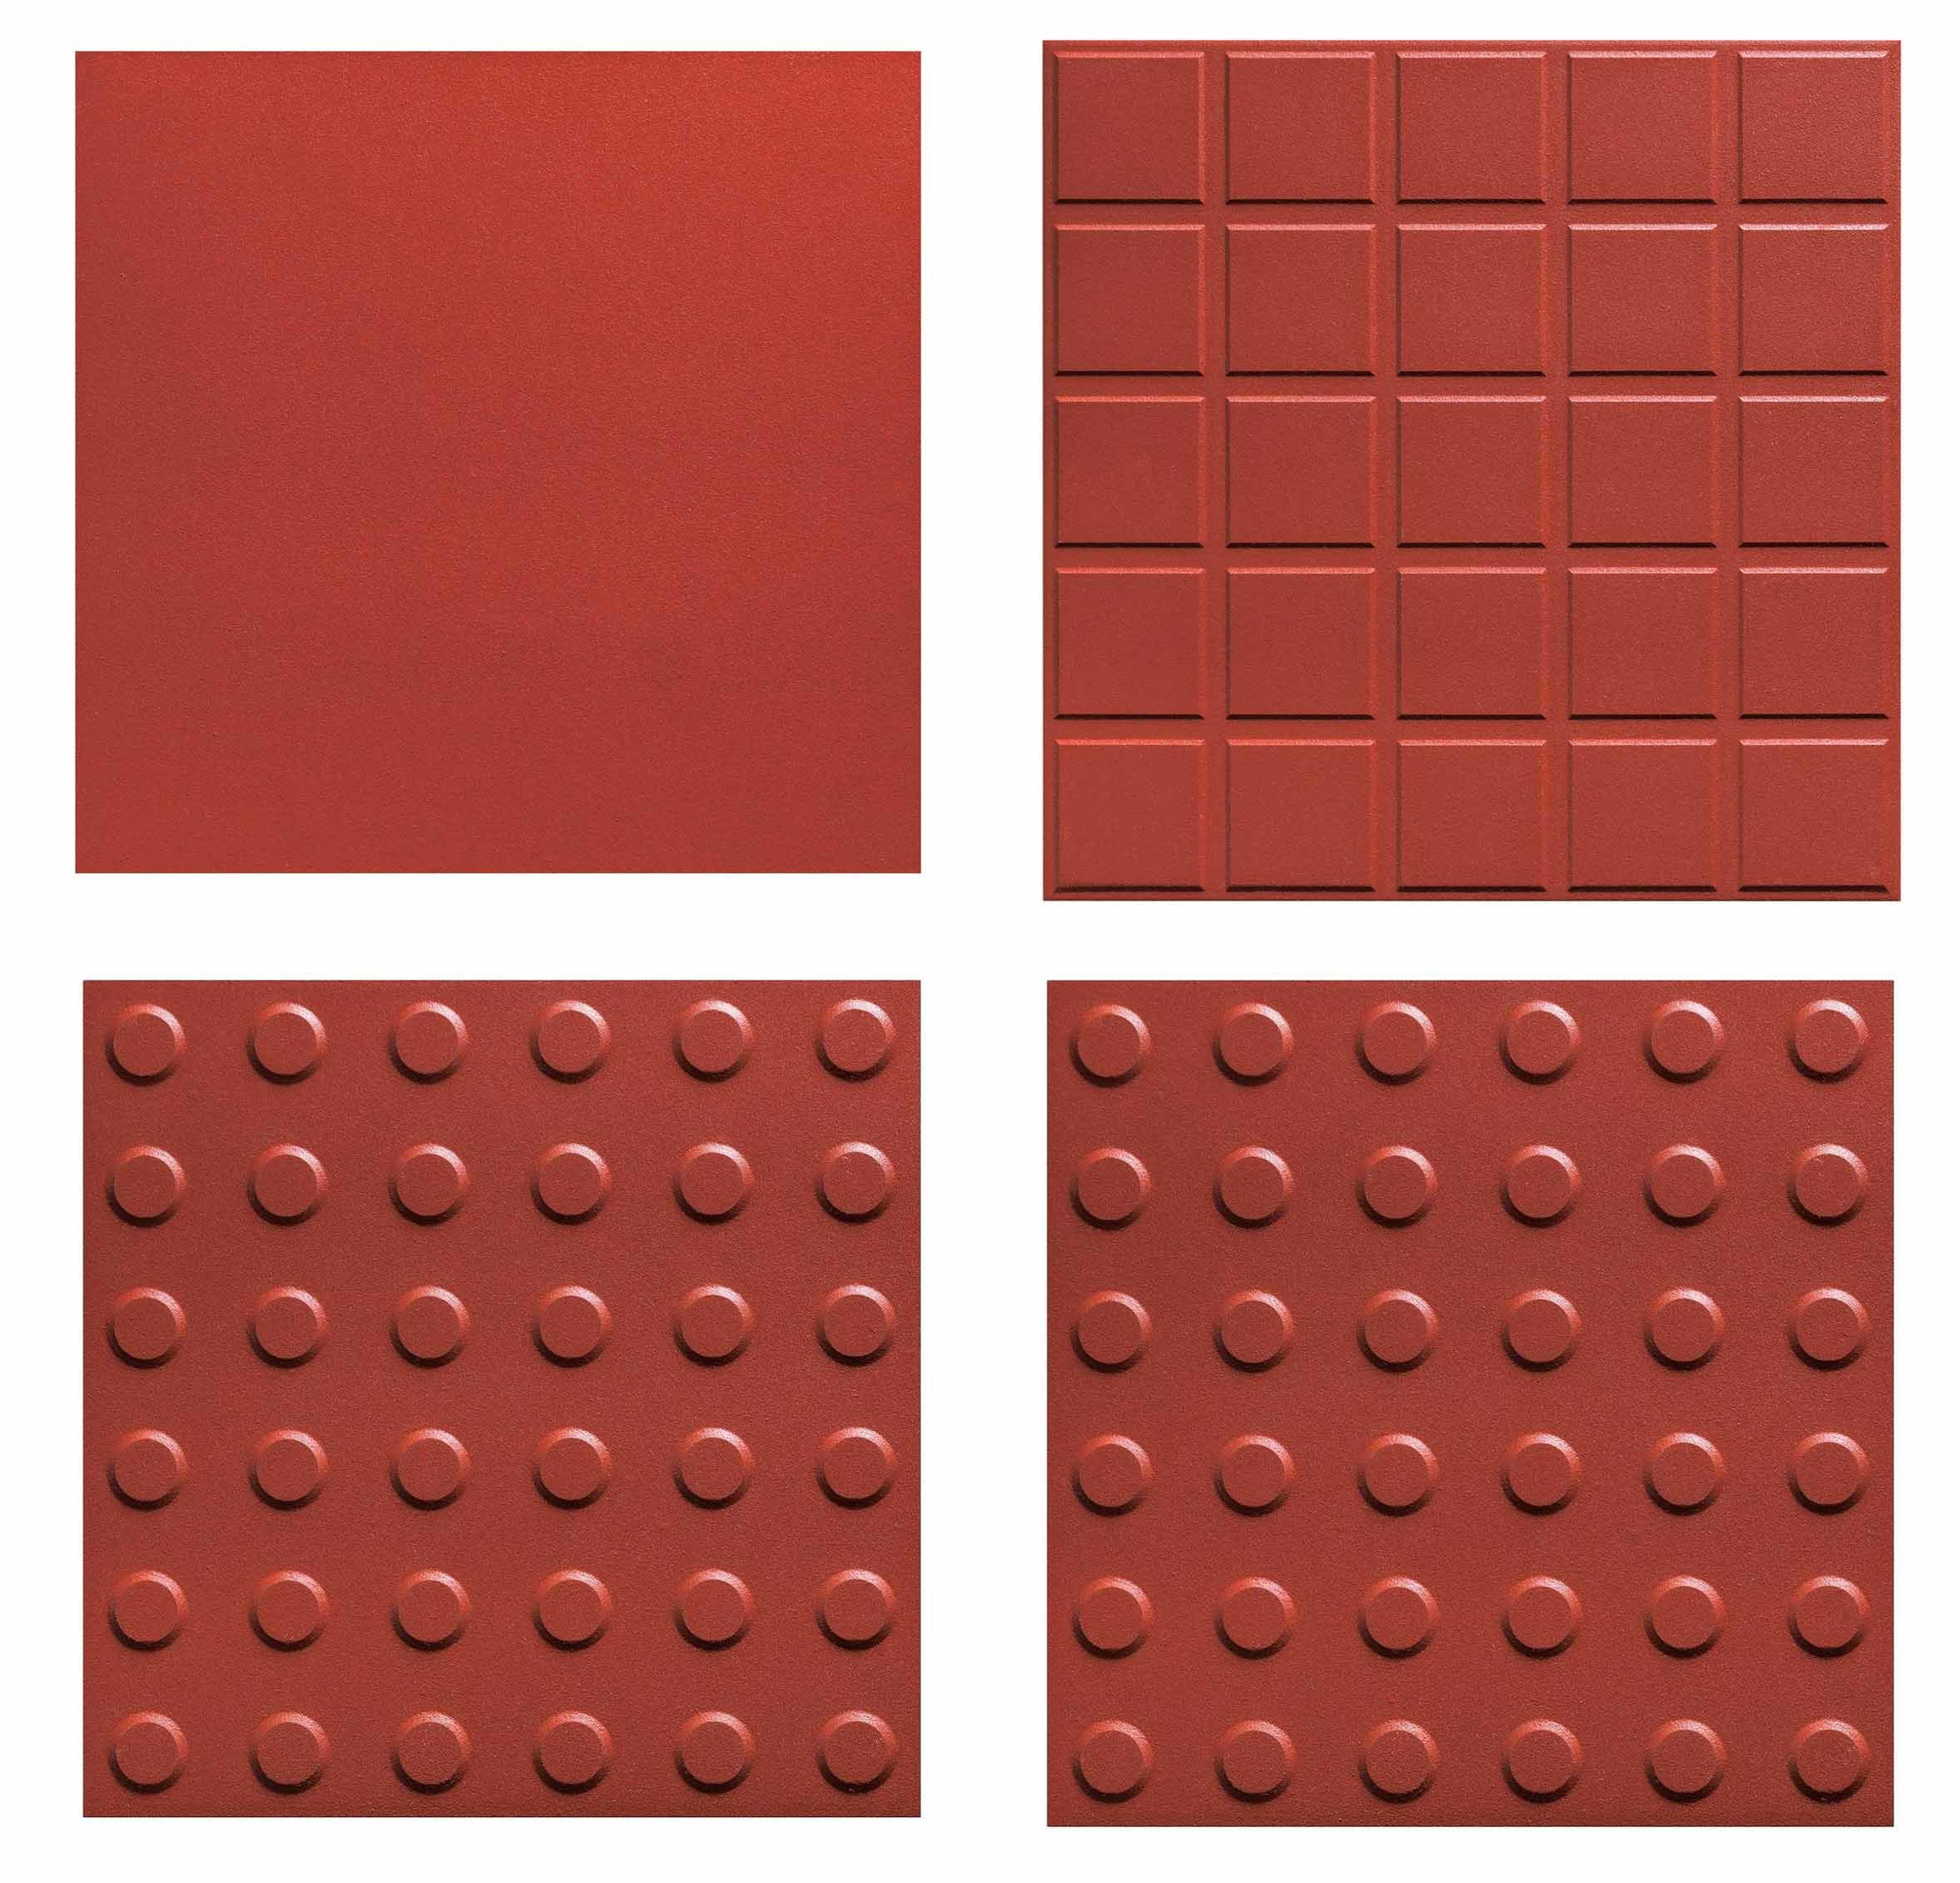 China red color terracotta ceramic tile extruded clay floor tile red color terracotta ceramic tile extruded clay floor tile dailygadgetfo Choice Image